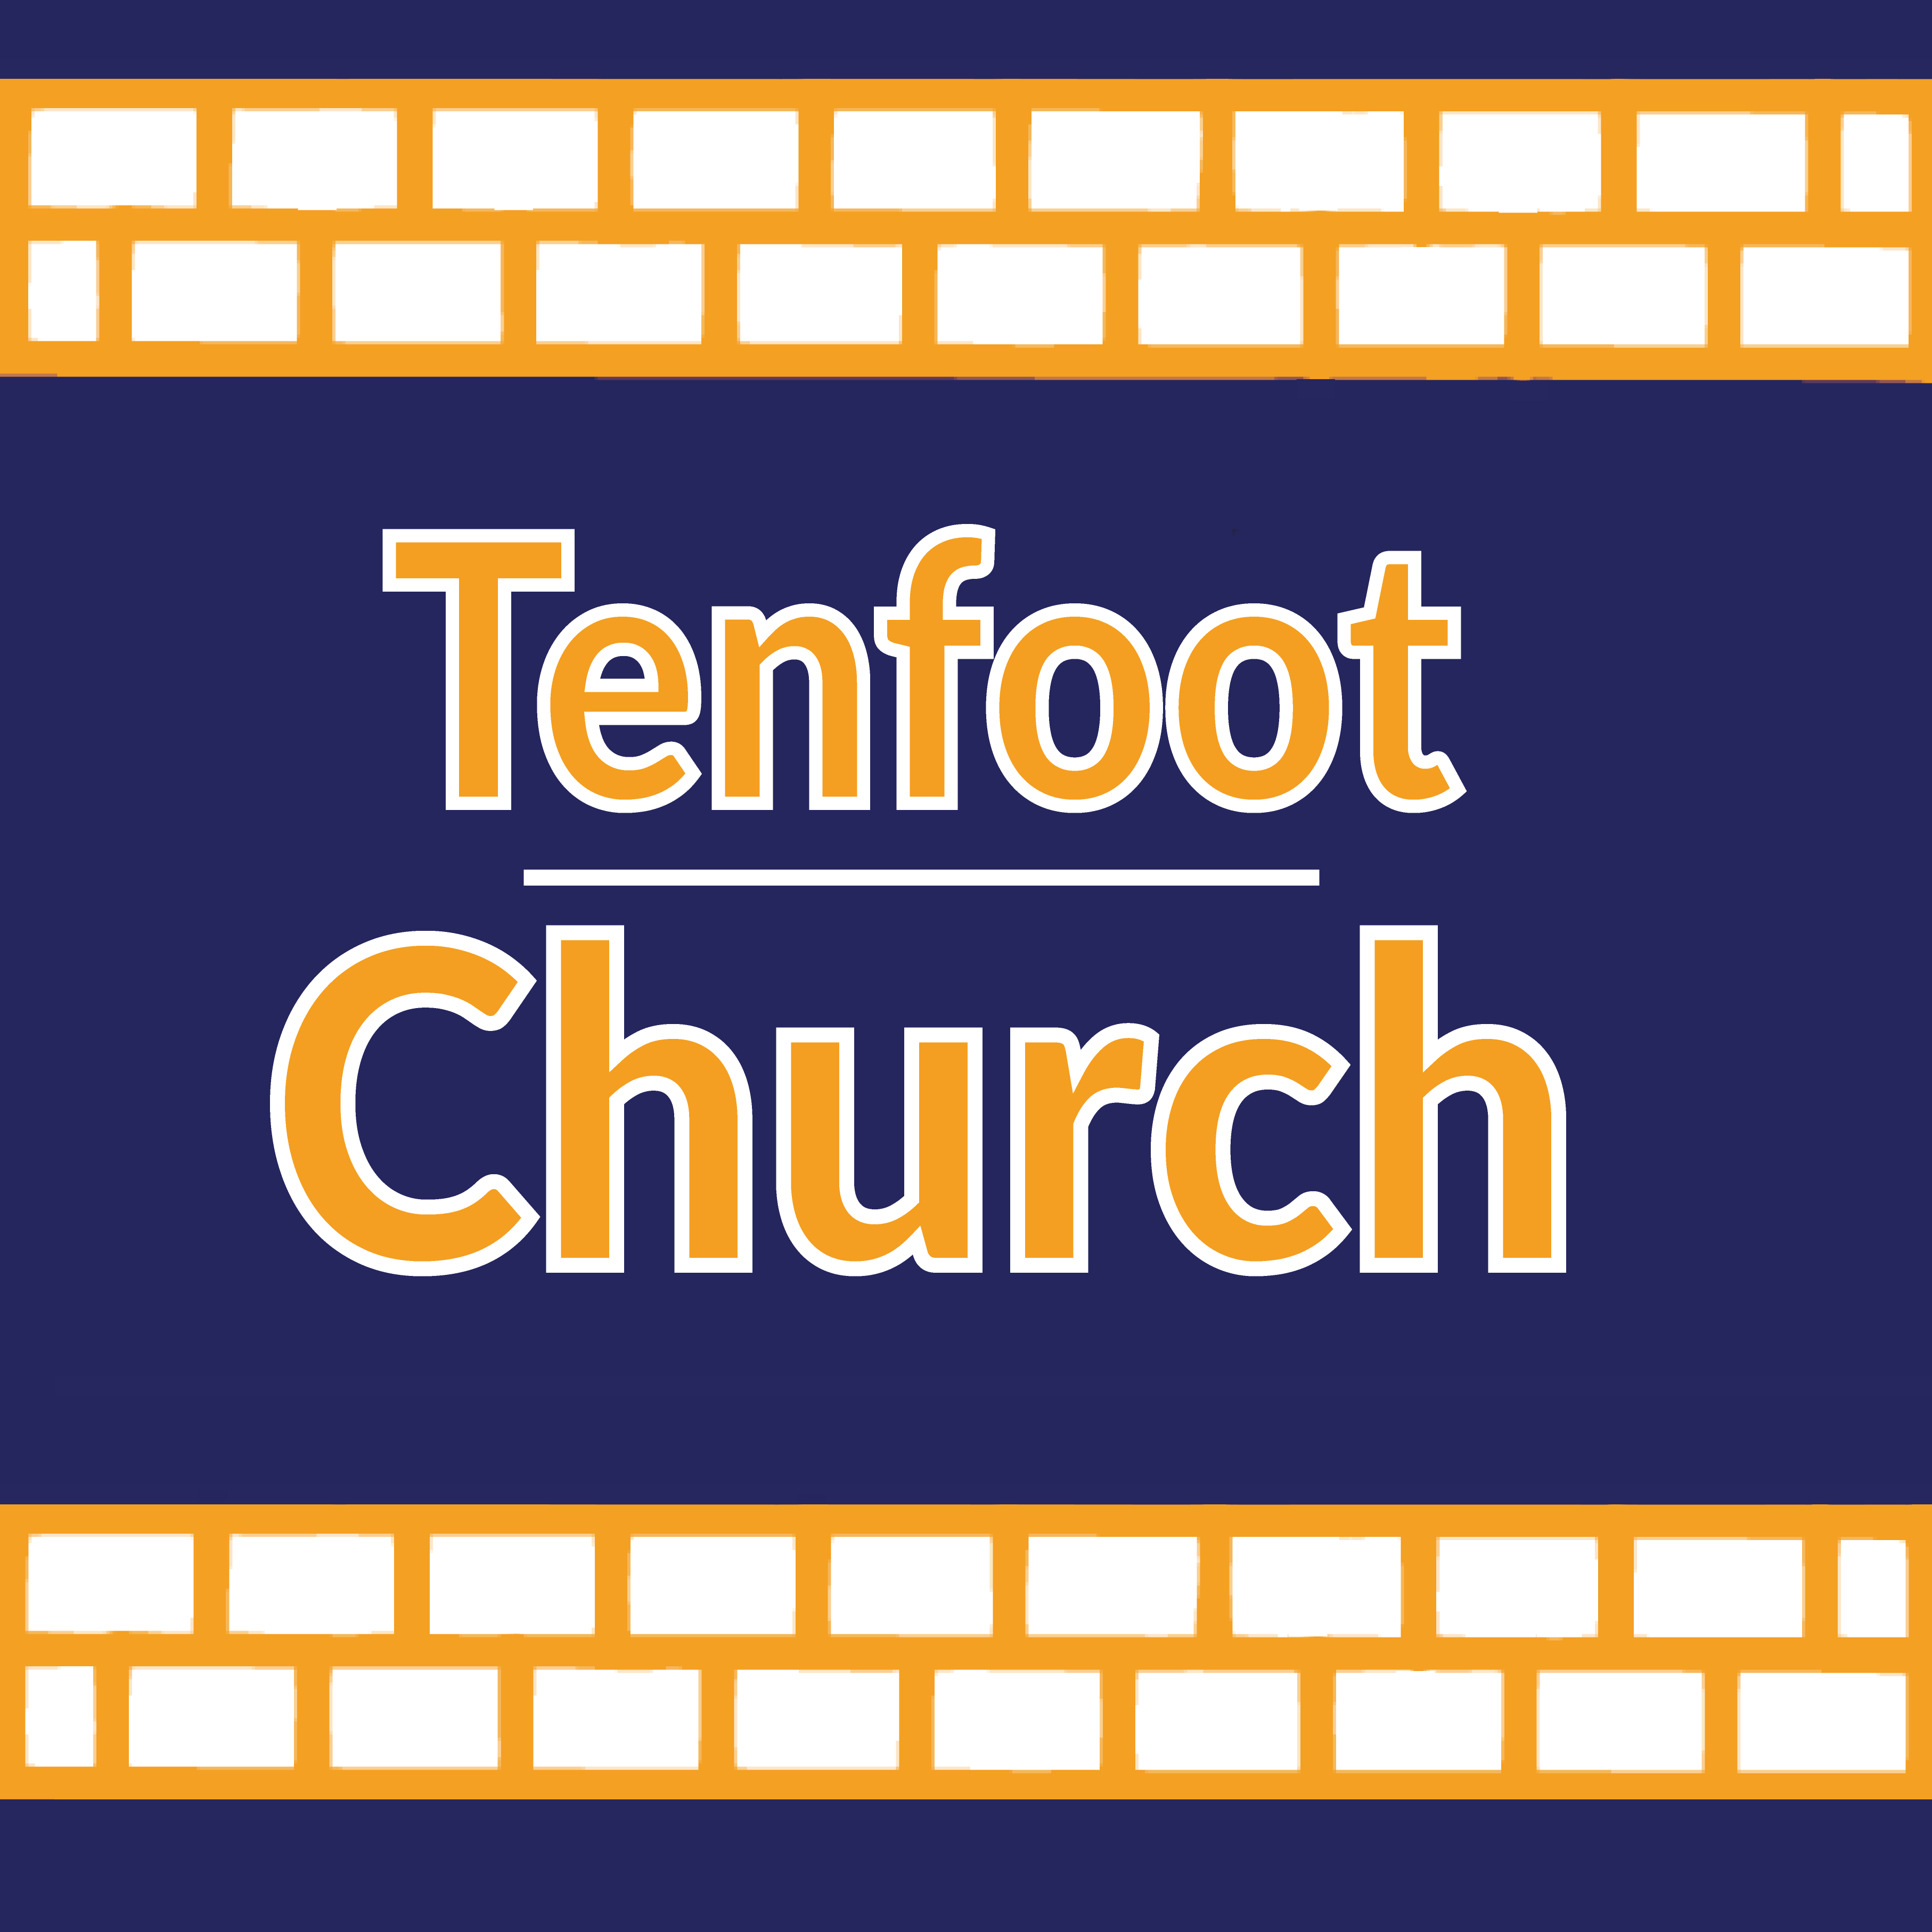 Tenfoot Church